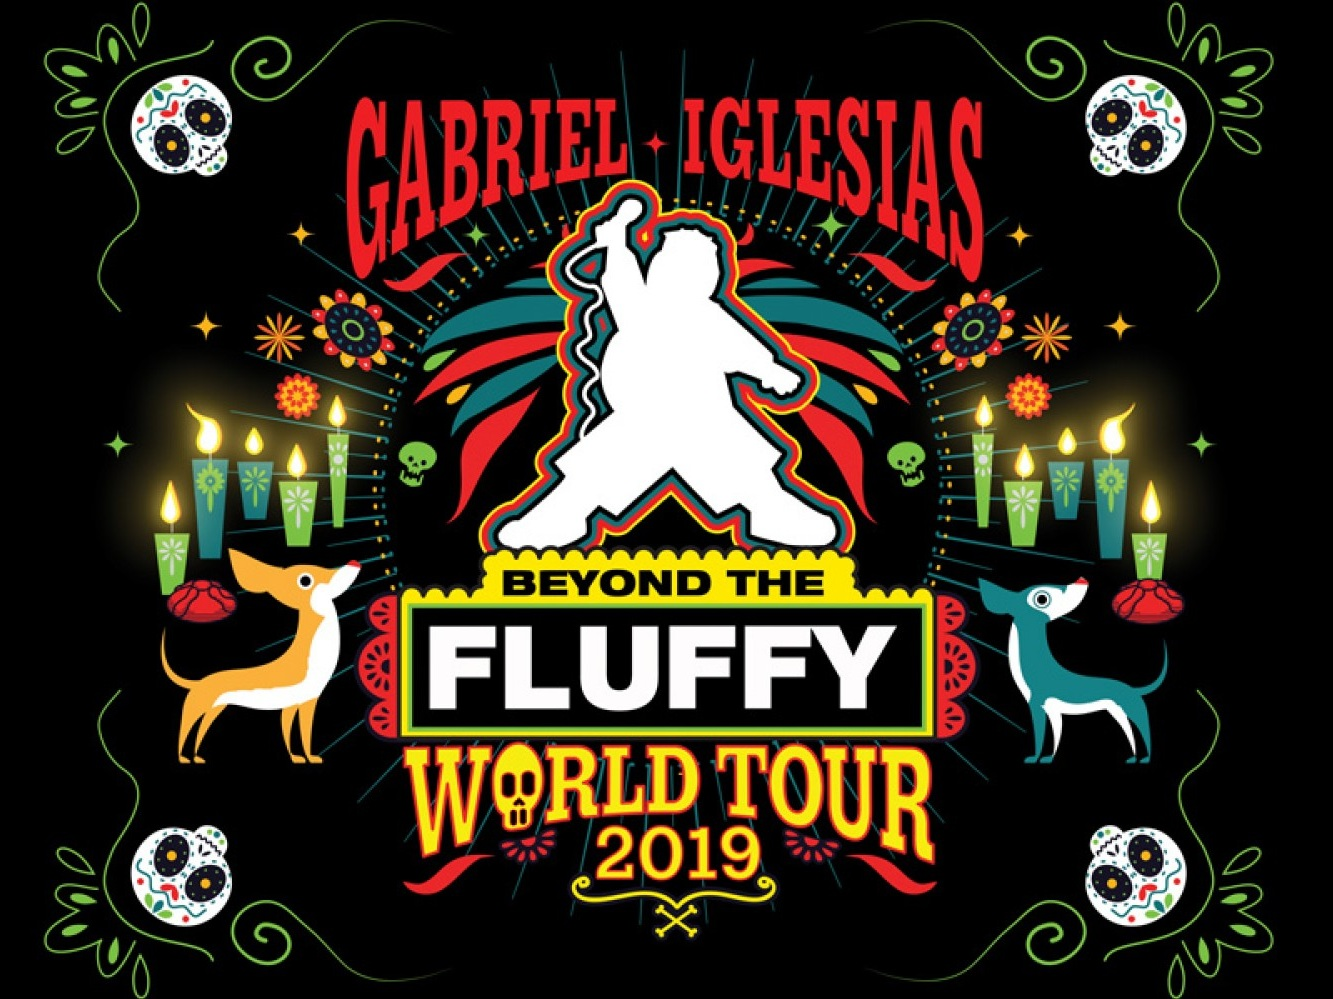 Gabriel Iglesias -  Beyond the Fluffy  National Tour, 2019  Creative Producer - Scenic and Video